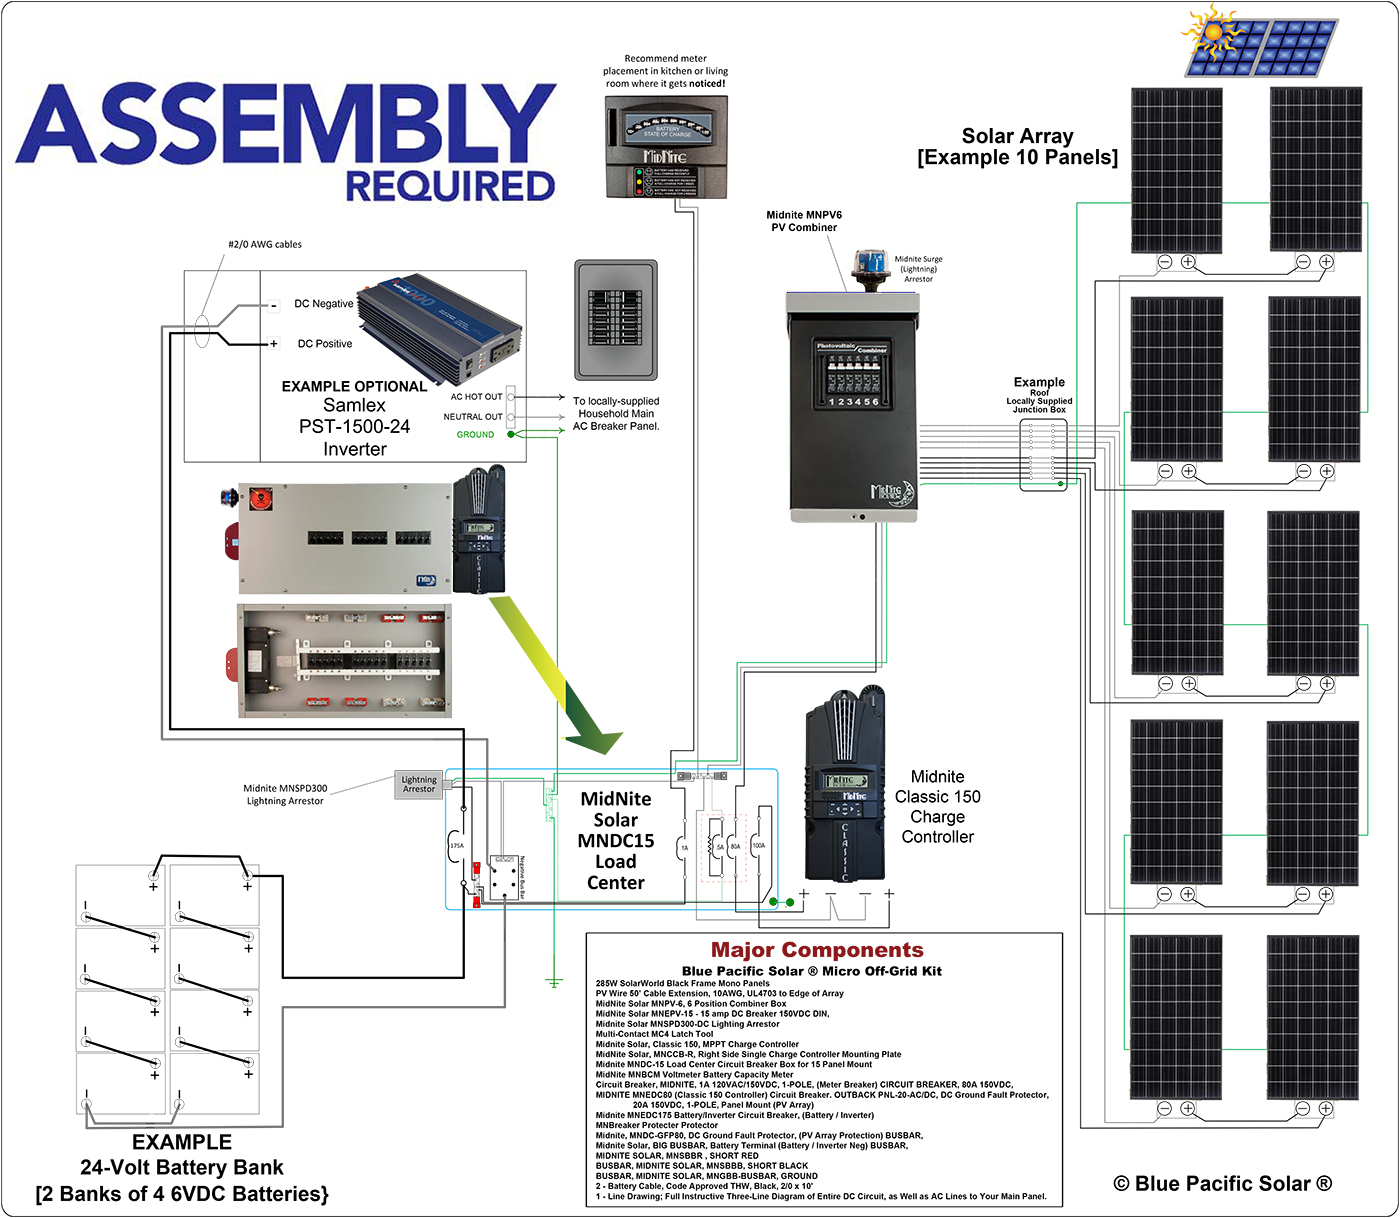 solar combiner box wiring diagram Download-Solar biner Box Wiring Diagram Elegant Midnite solar F Grid 3 4kw Micro Blue Pacific solar 17-d